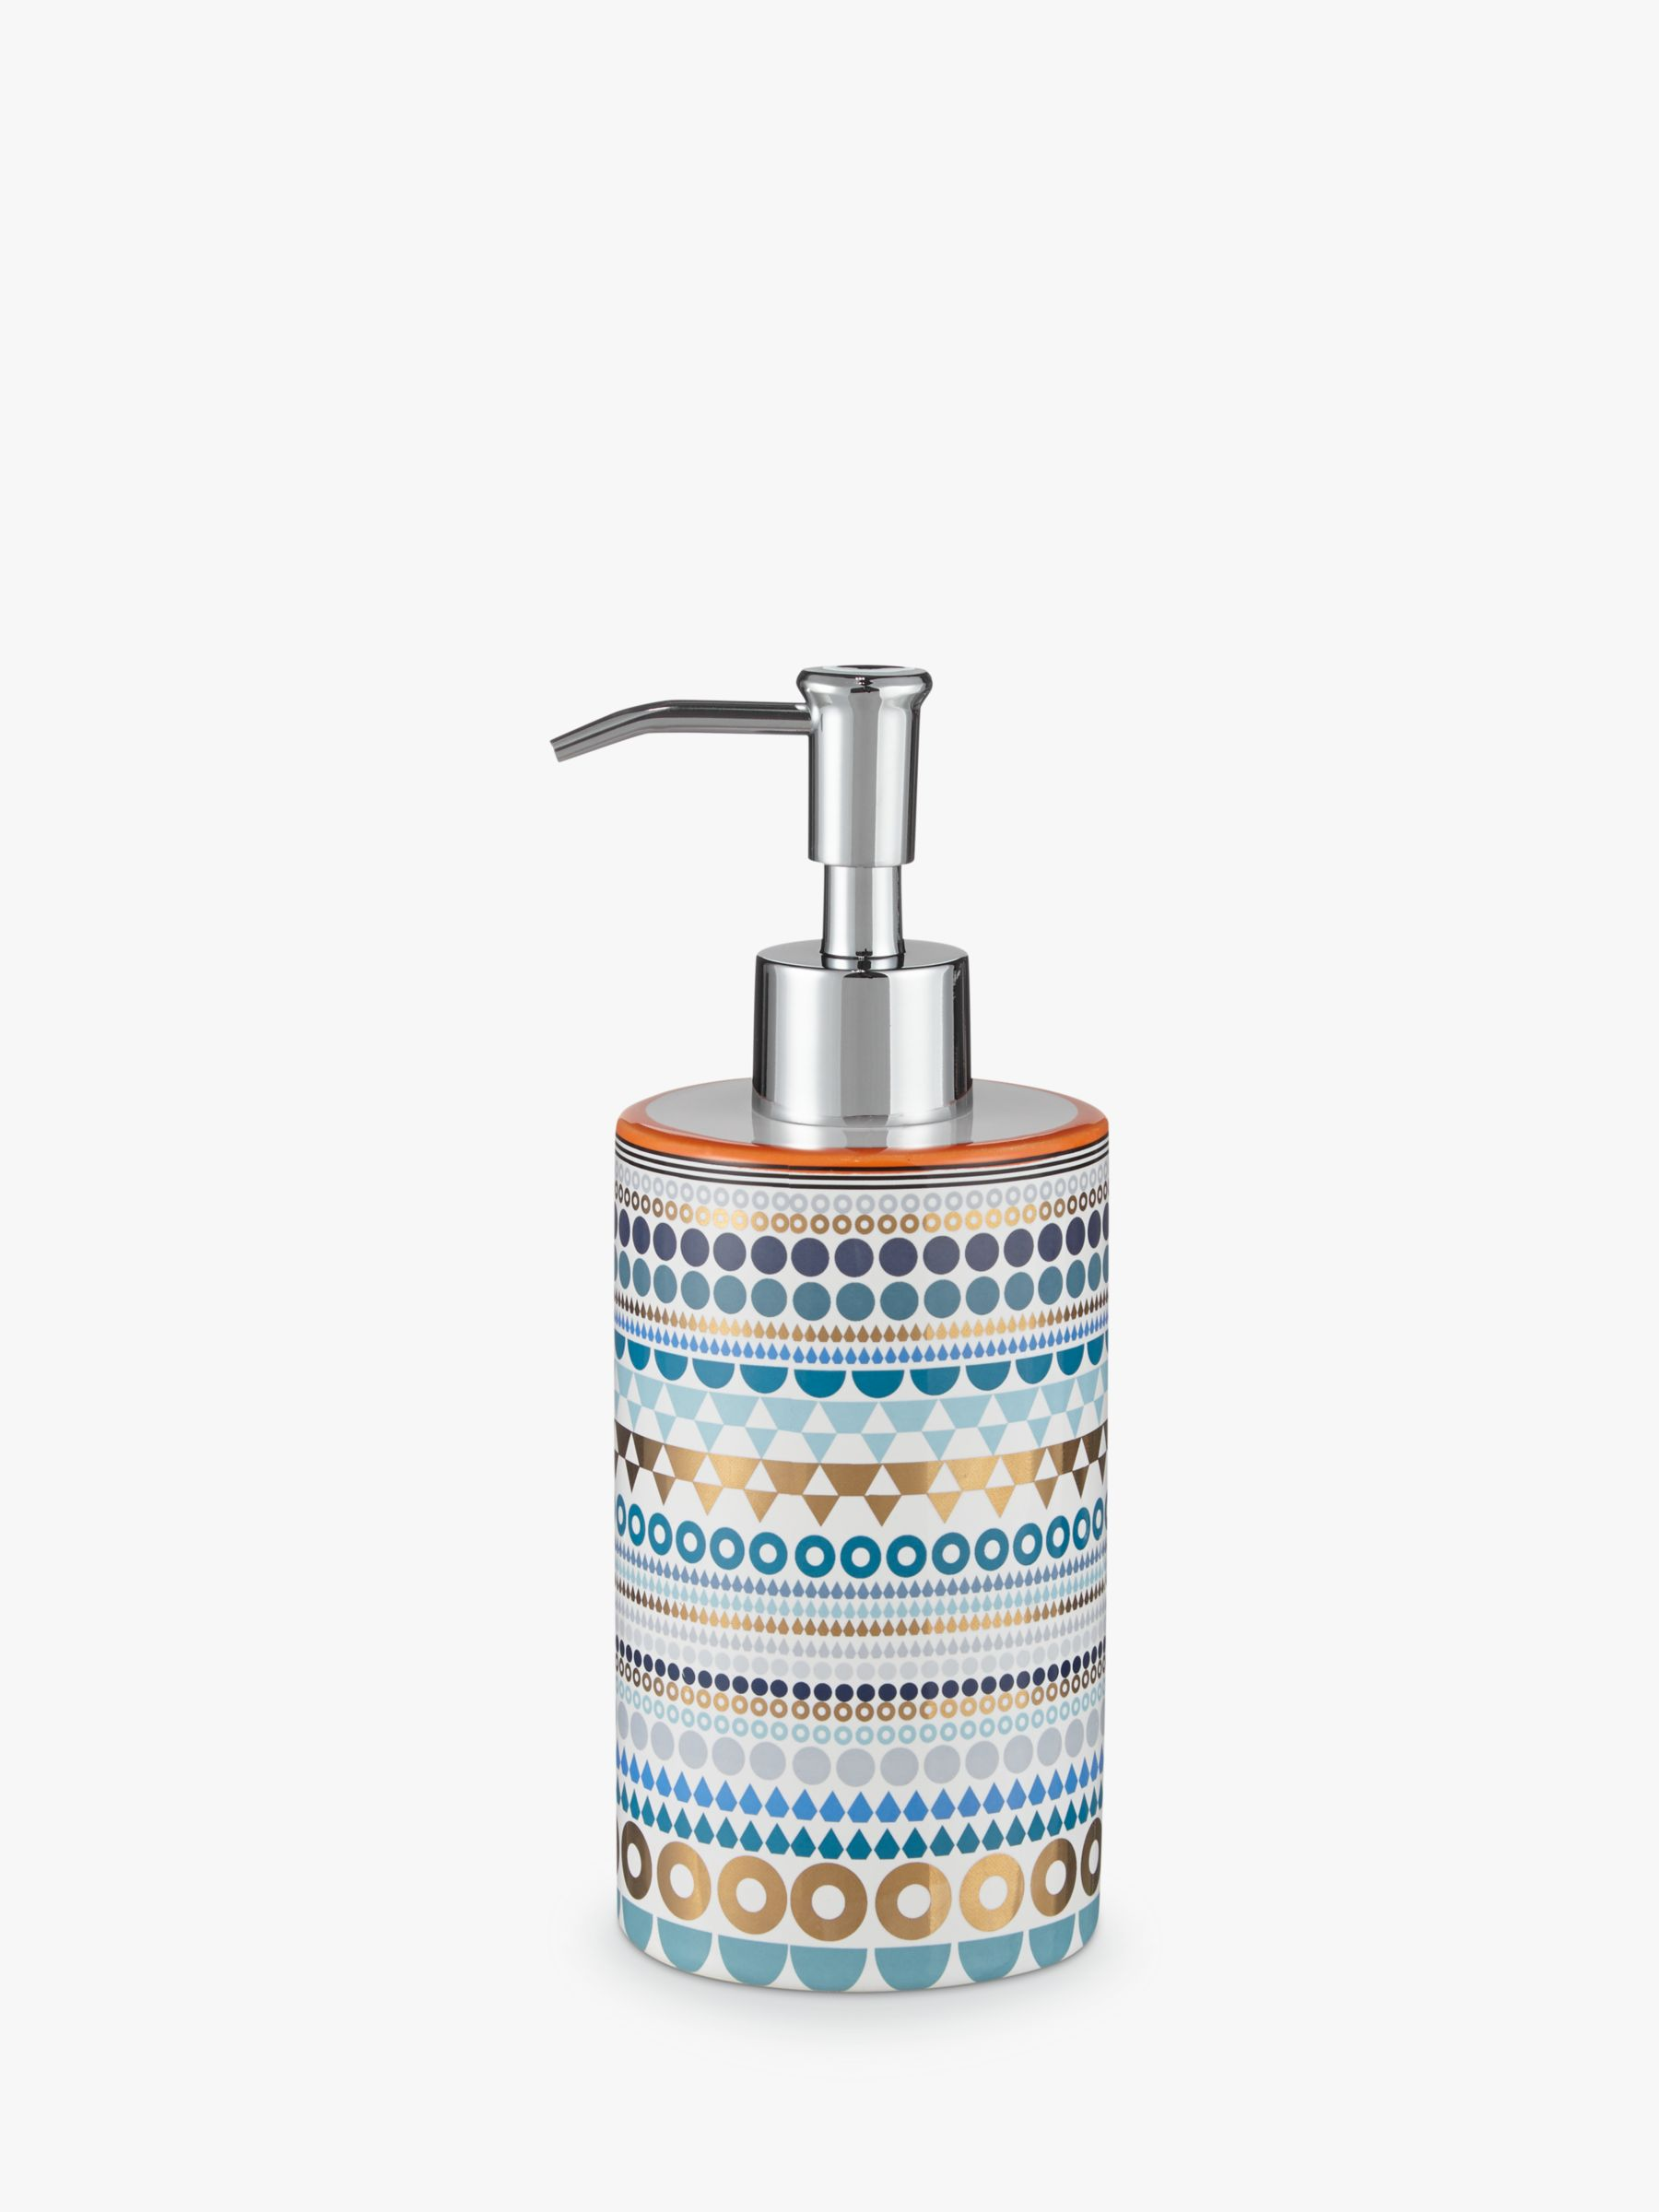 Margo Selby for John Lewis Margo Selby for John Lewis Soap Dispenser